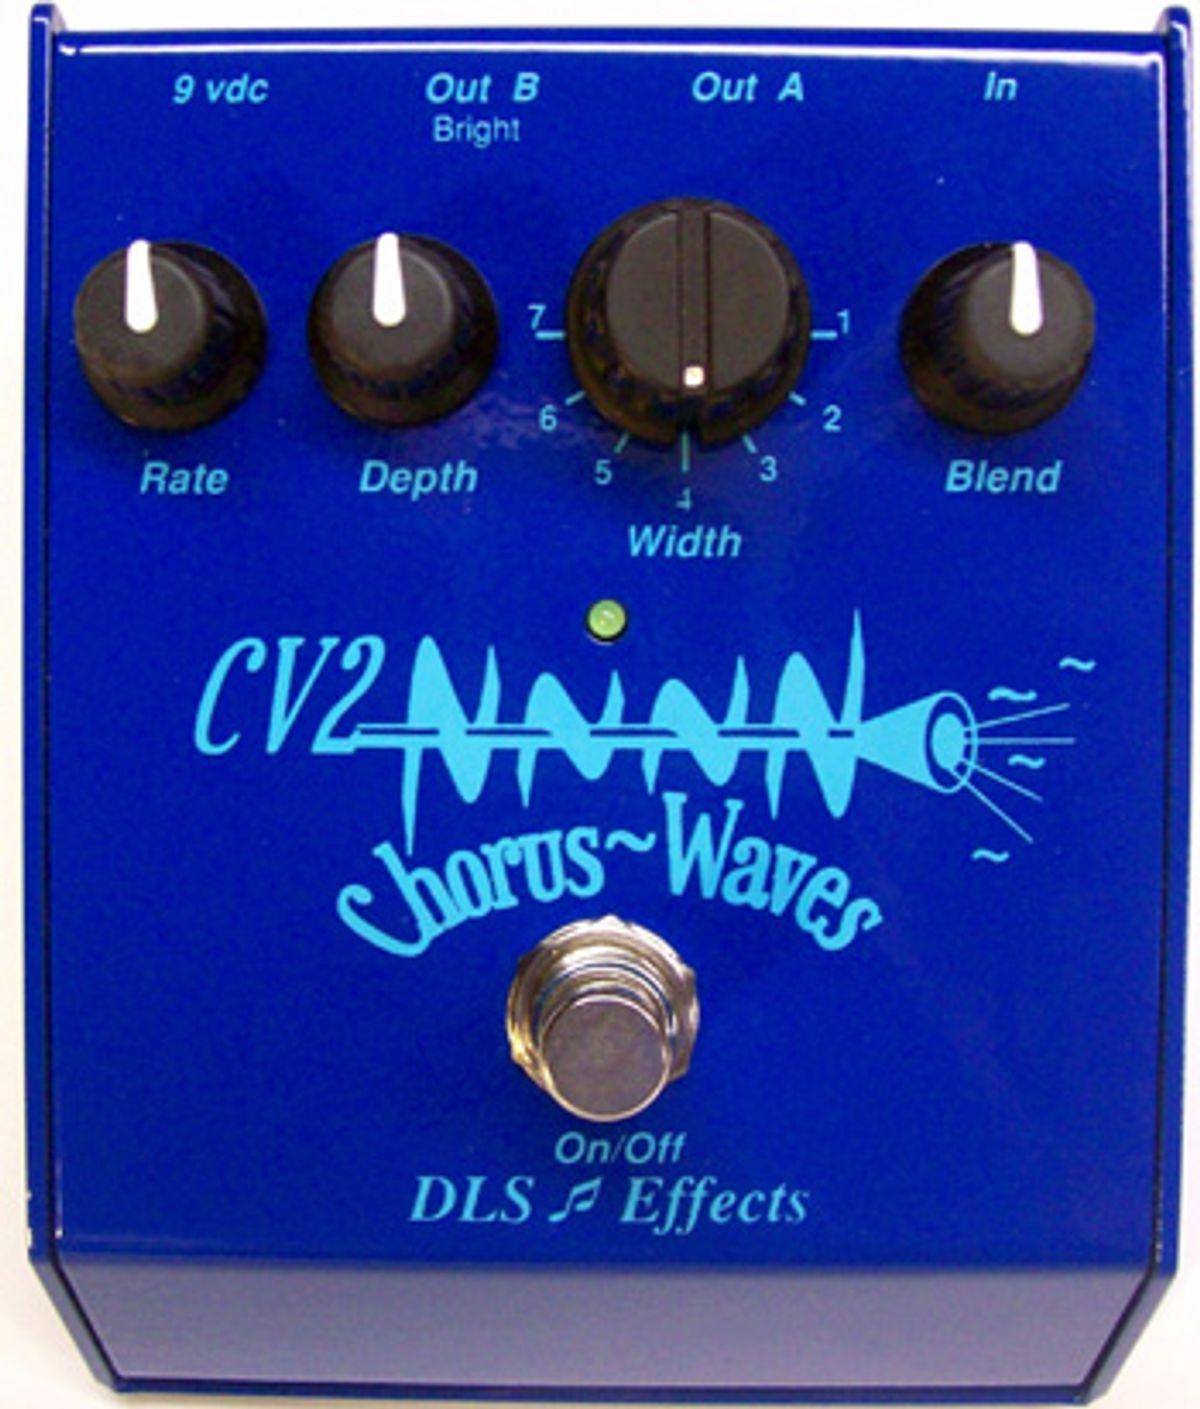 DLS Effects Releases Stereo Chorus Waves